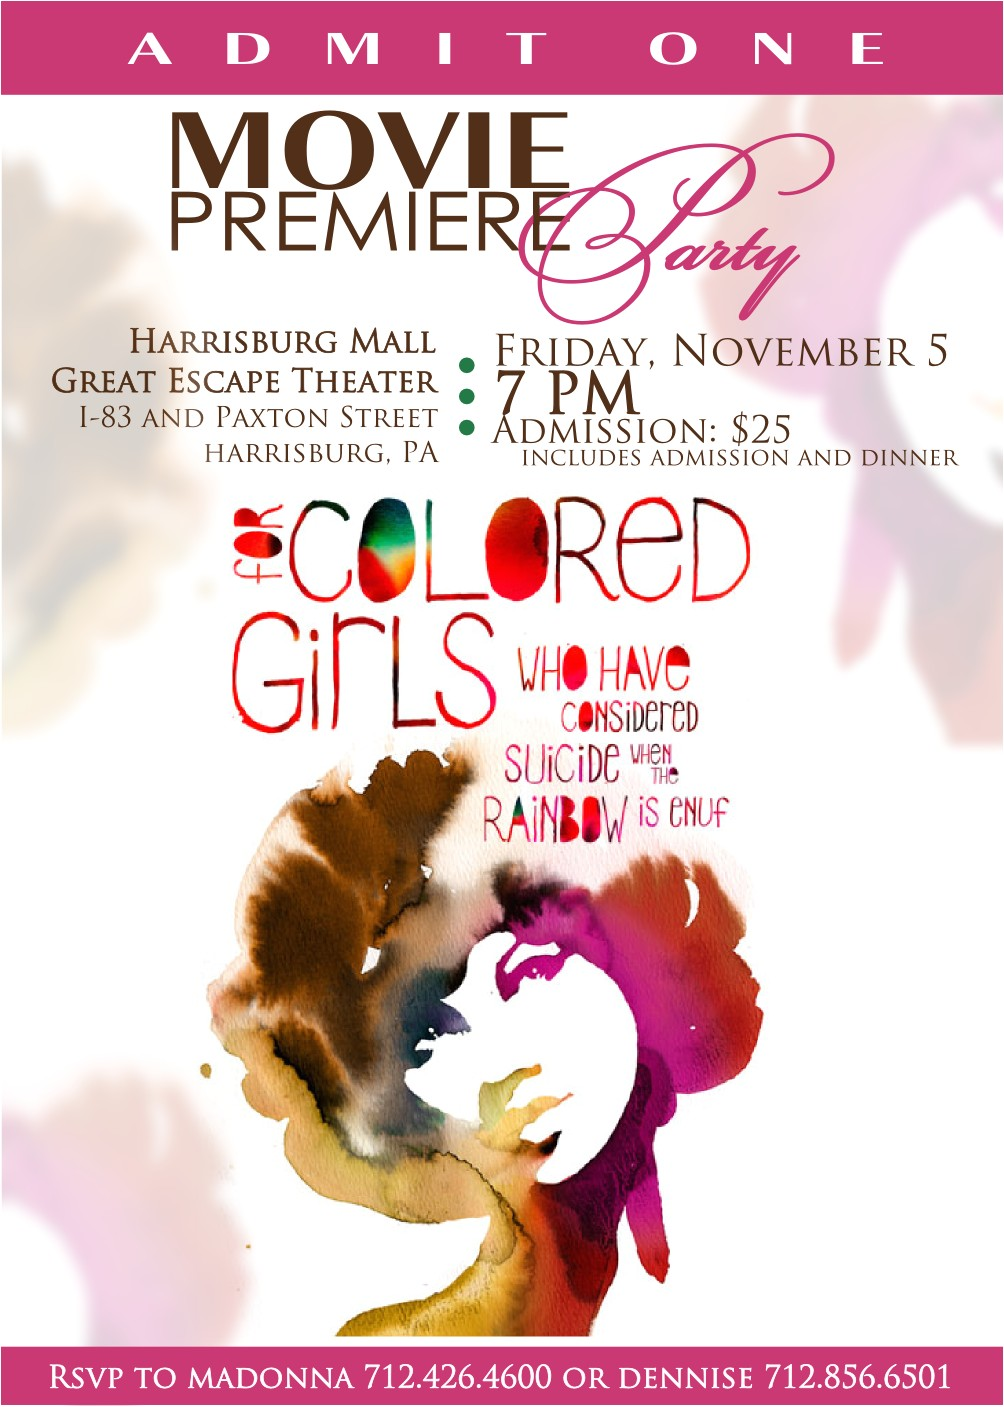 Movie Premiere Party Invitations Signatures by Sarah Movie Premiere Party Invitation for